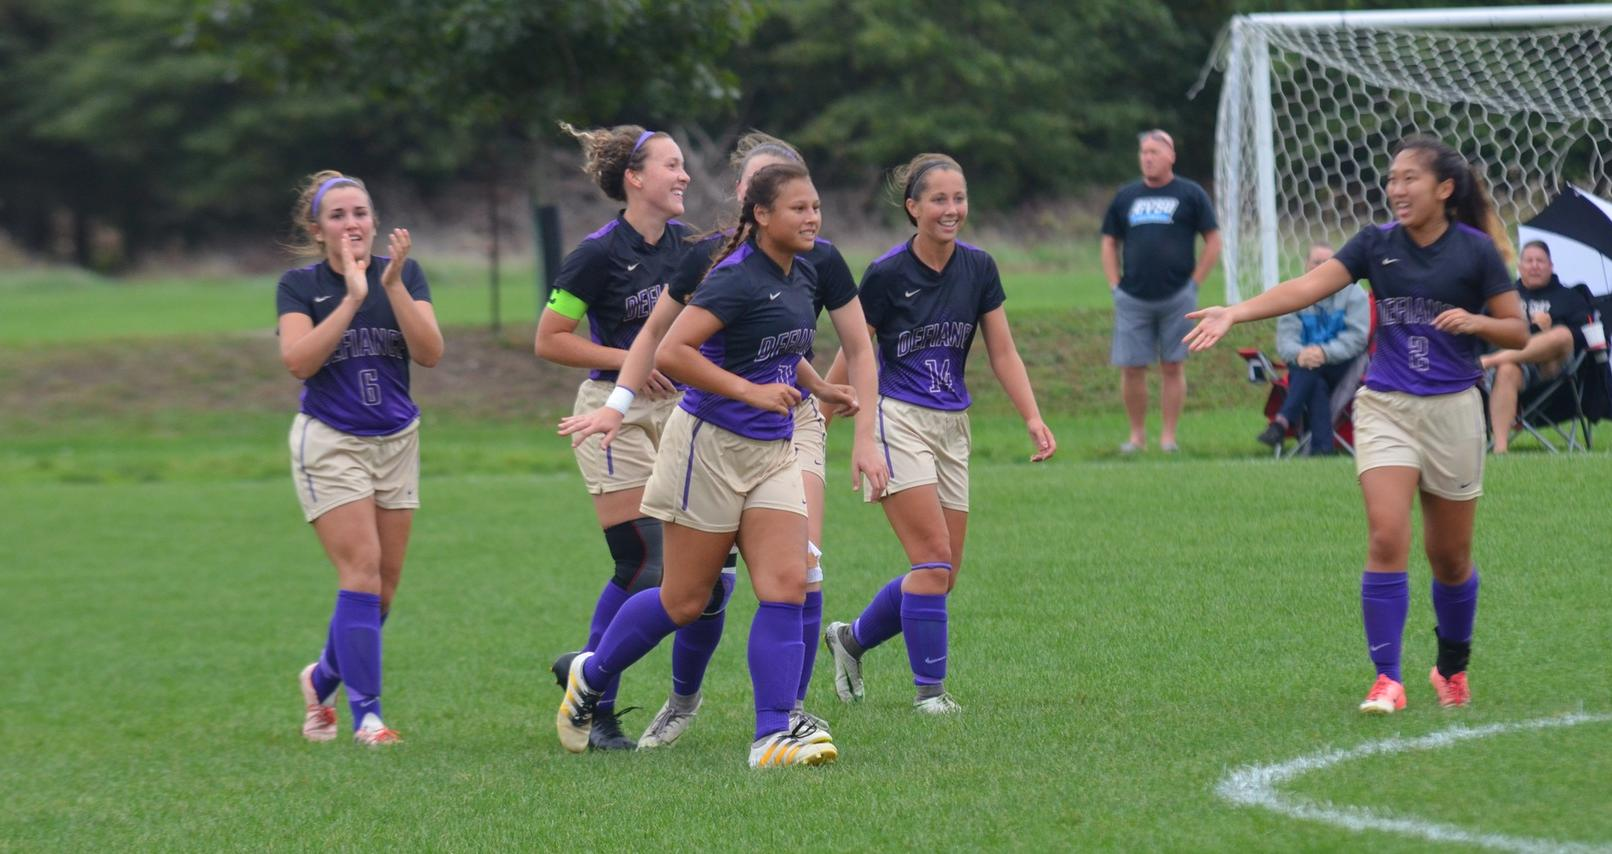 Women's Soccer Schedule Set for 2019 Season